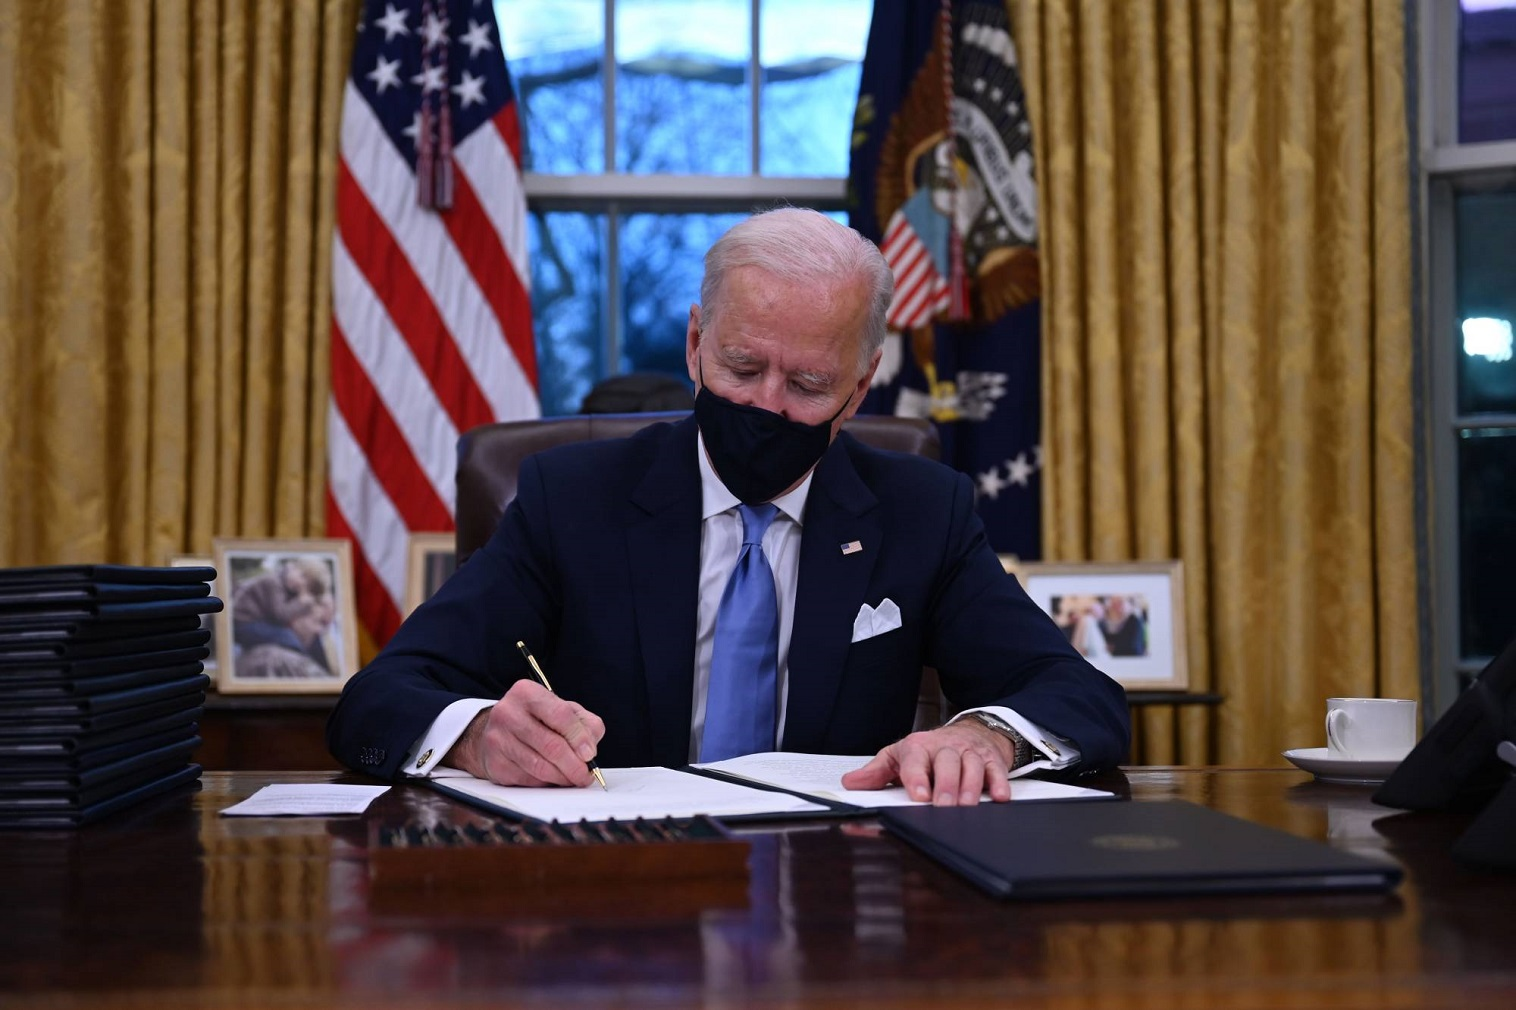 Biden: Executive Order 13780, and Proclamations 9645, 9723, and 9983 are hereby revoked.